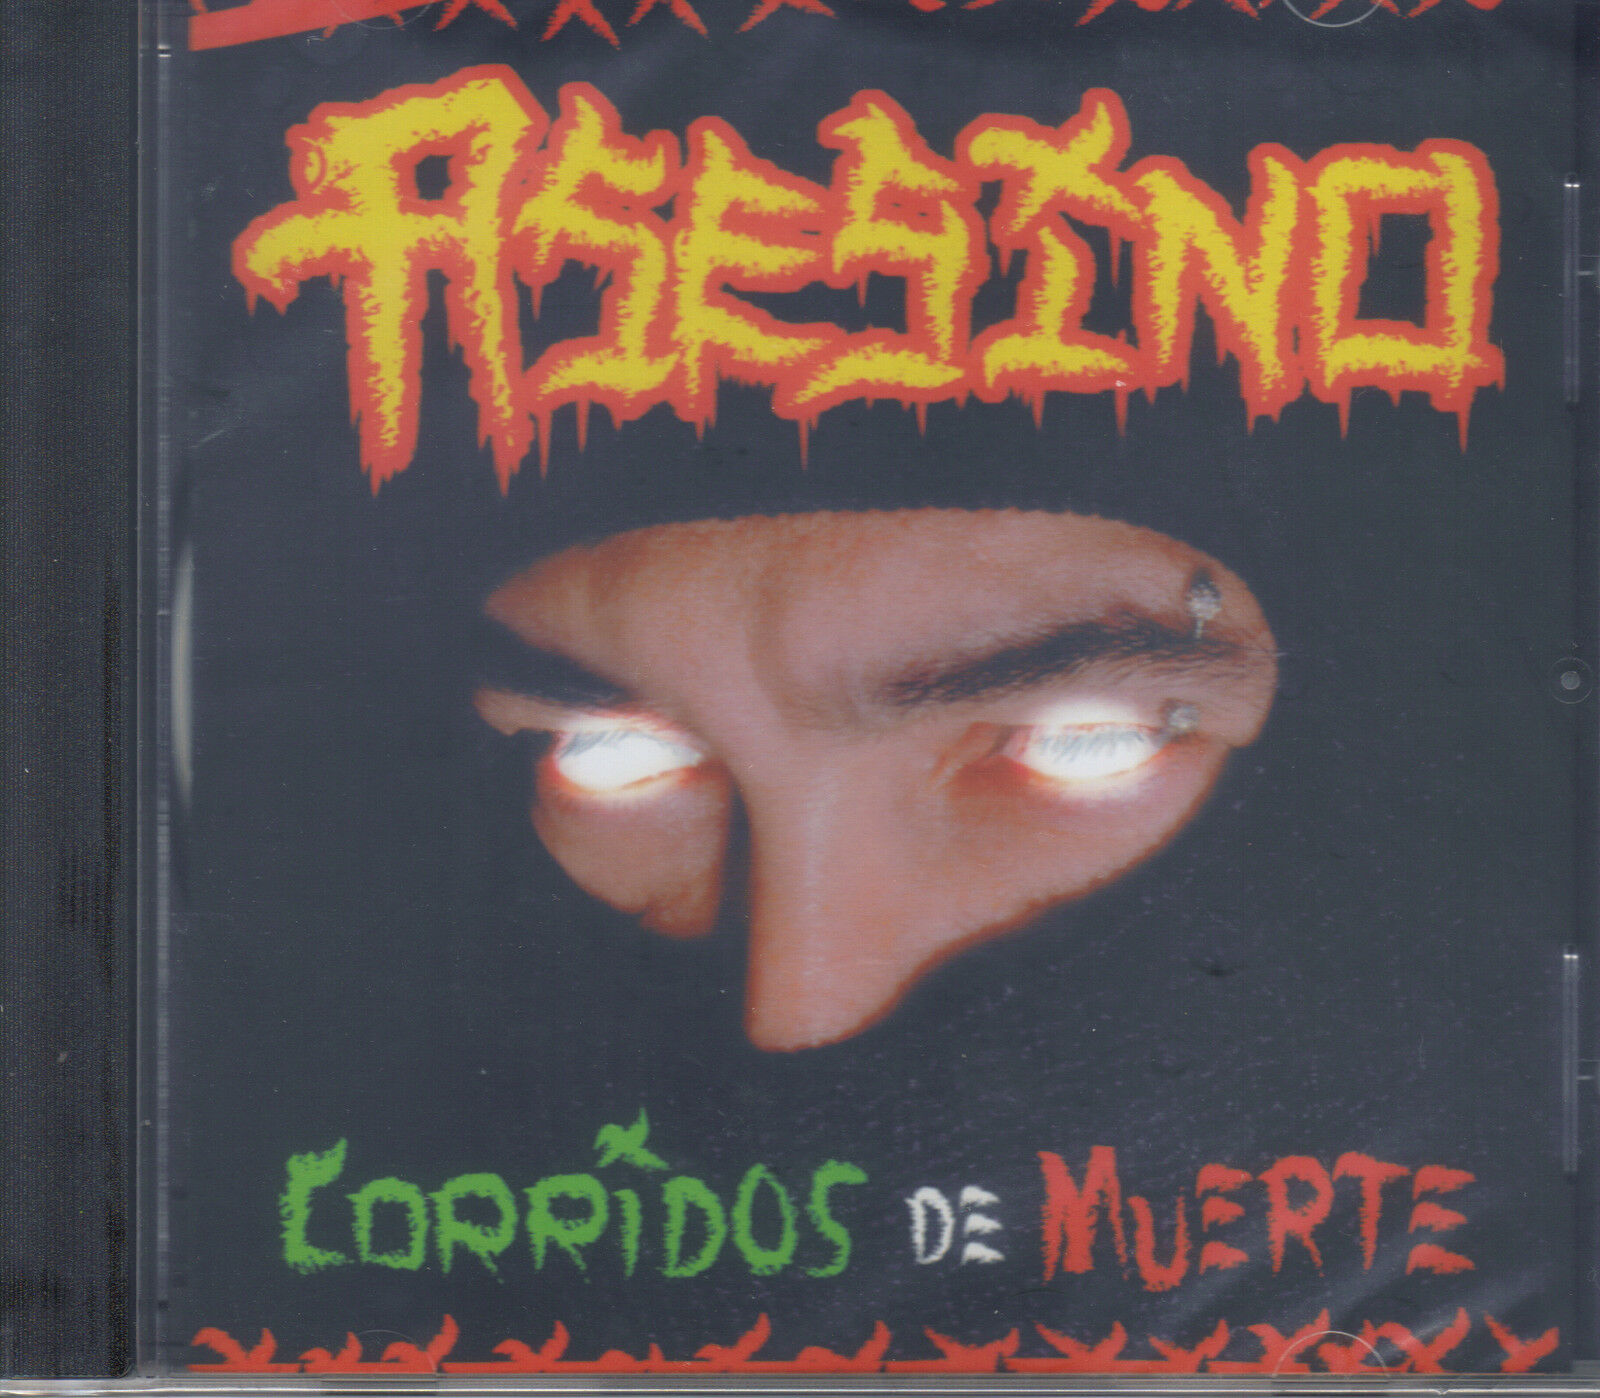 Asesino-corridos De Muerte-cd-re-issue-death-grindcore-brujeria-divine Heresy